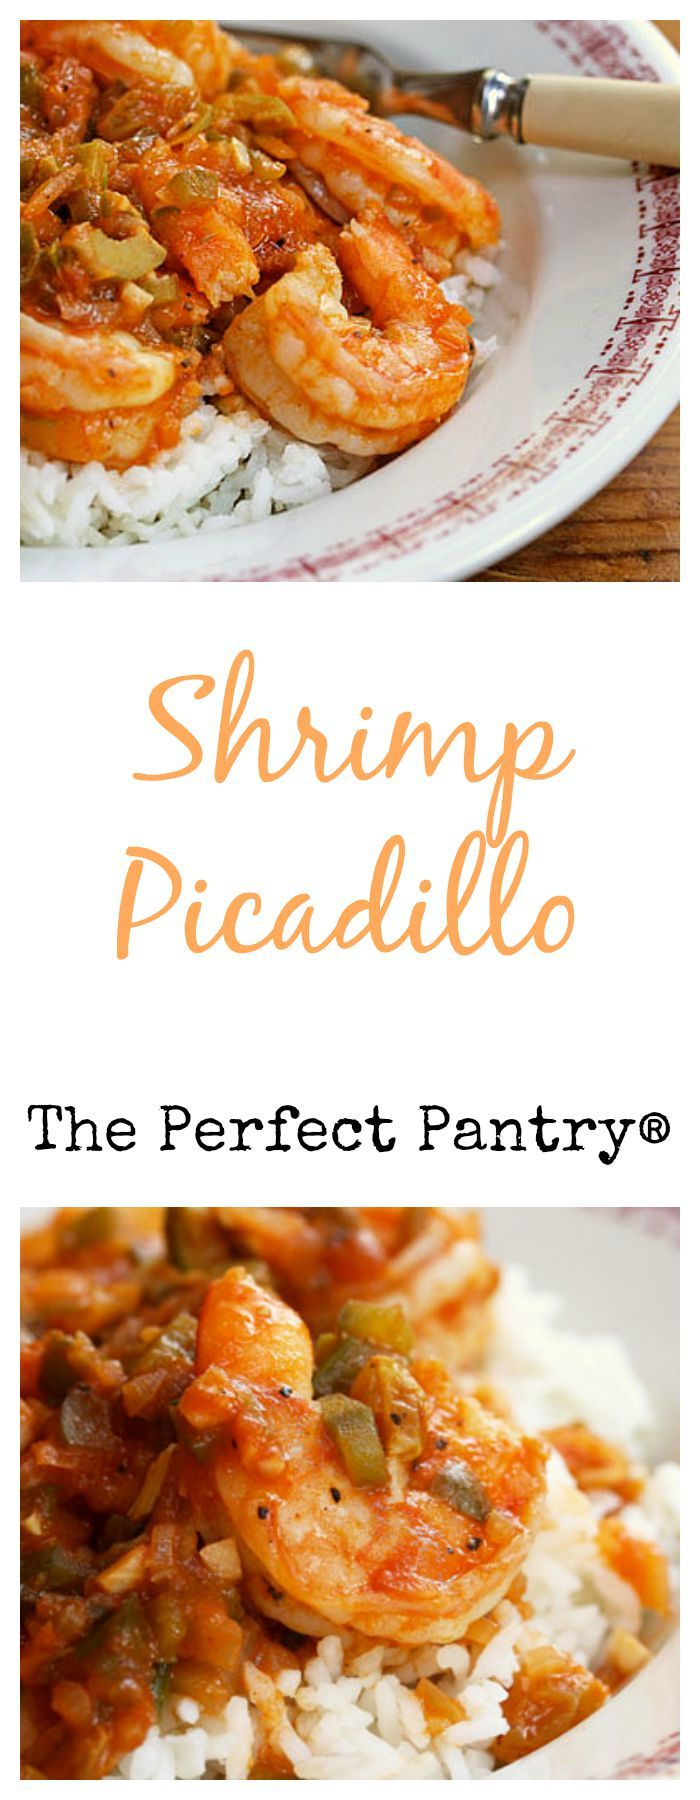 Shrimp picadillo, a simple dish with a Cuban twist, from The Perfect Pantry. #recipesforshrimp